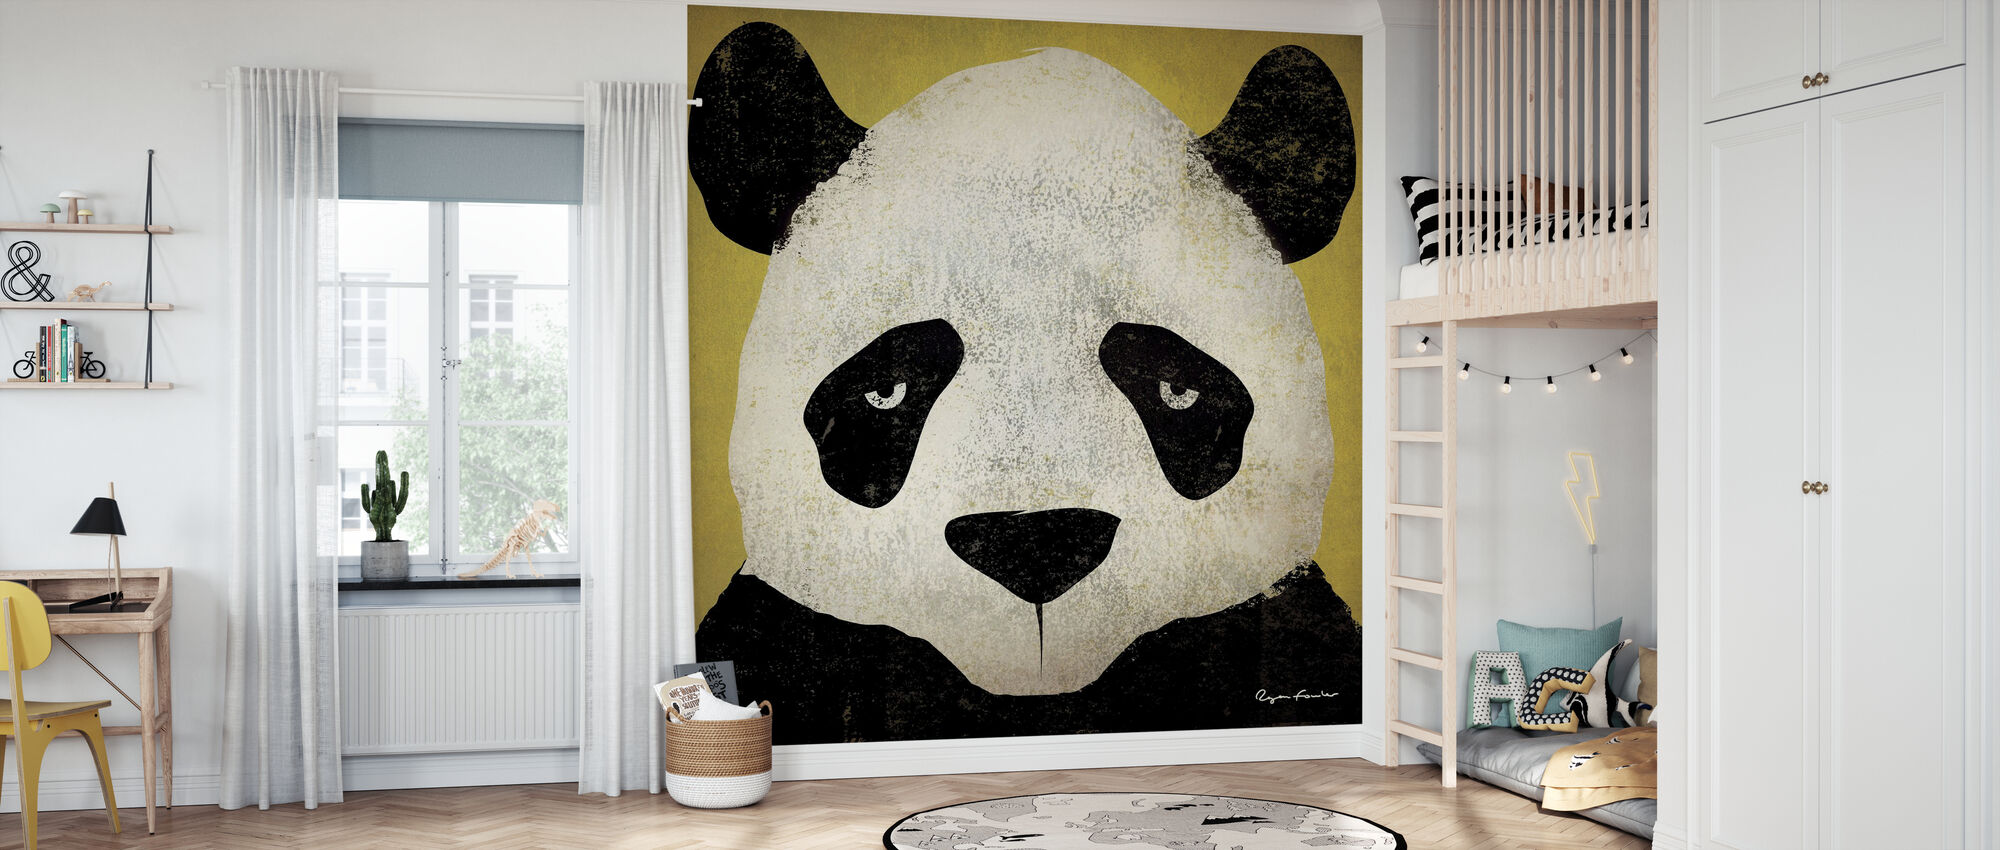 Ryan Fowler - Panda - Wallpaper - Kids Room